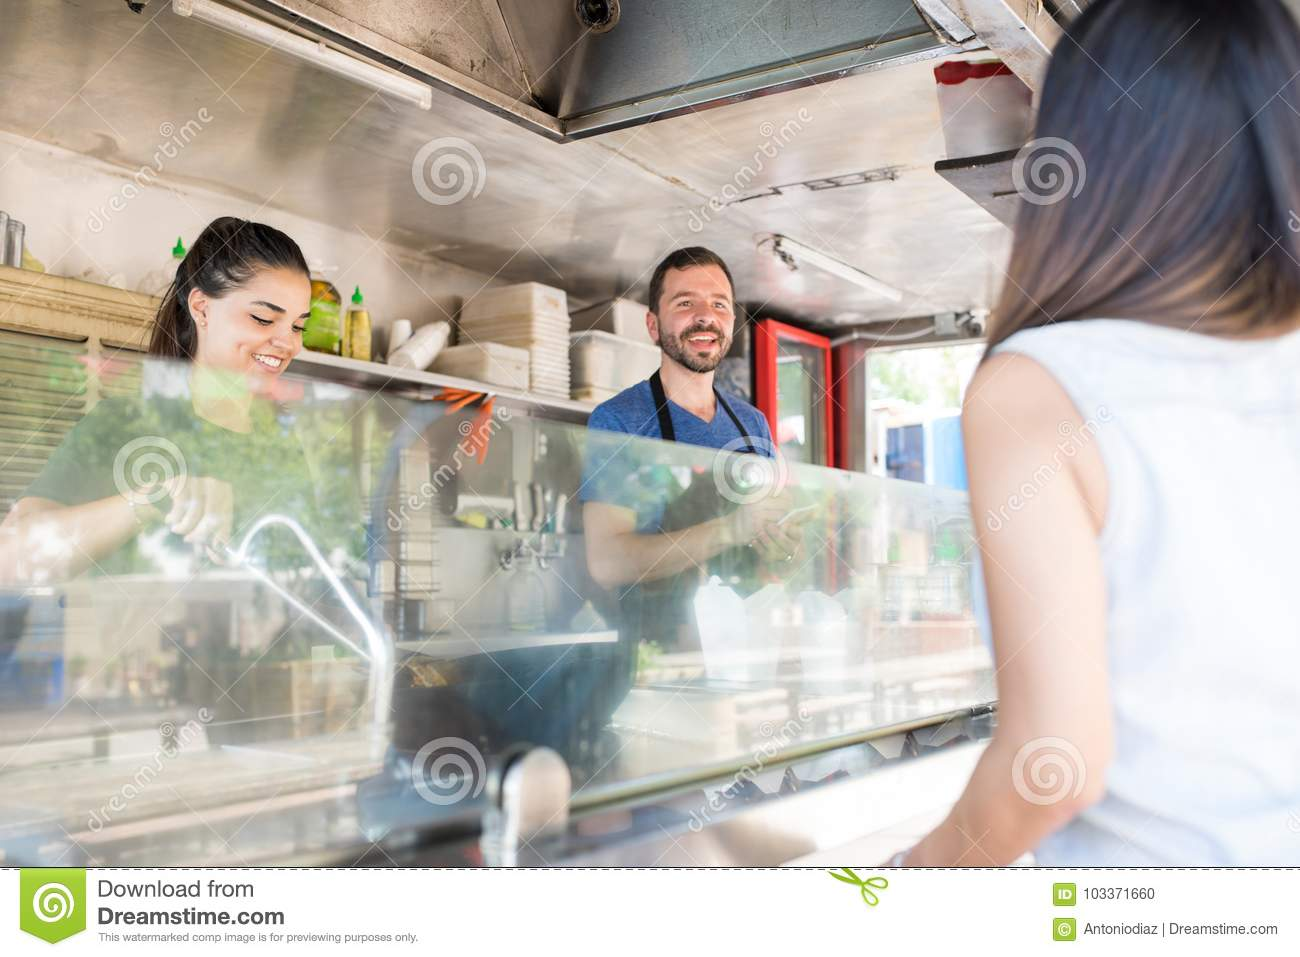 Taking an order in a food truck